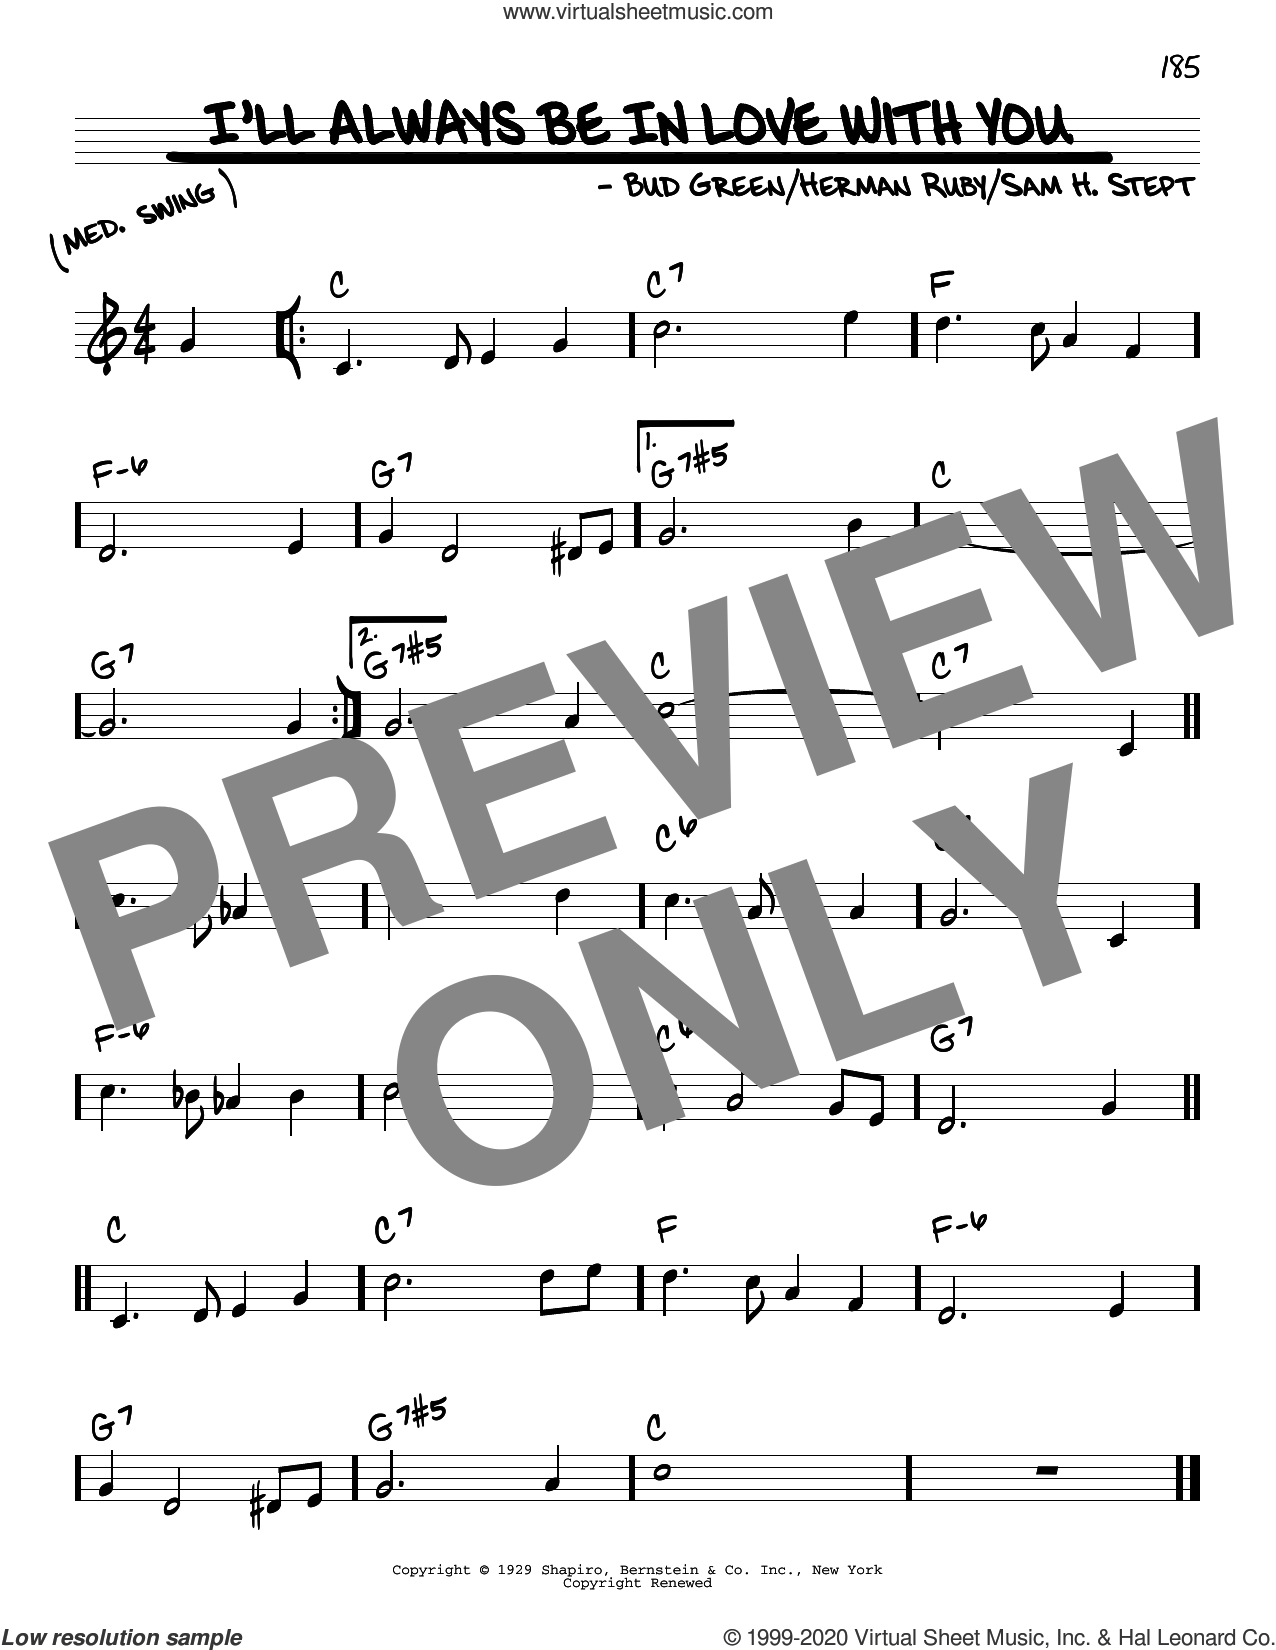 I'll Always Be In Love With You sheet music for voice and other instruments (real book) by Bud Green, Herman Ruby and Sam H. Stept, intermediate skill level